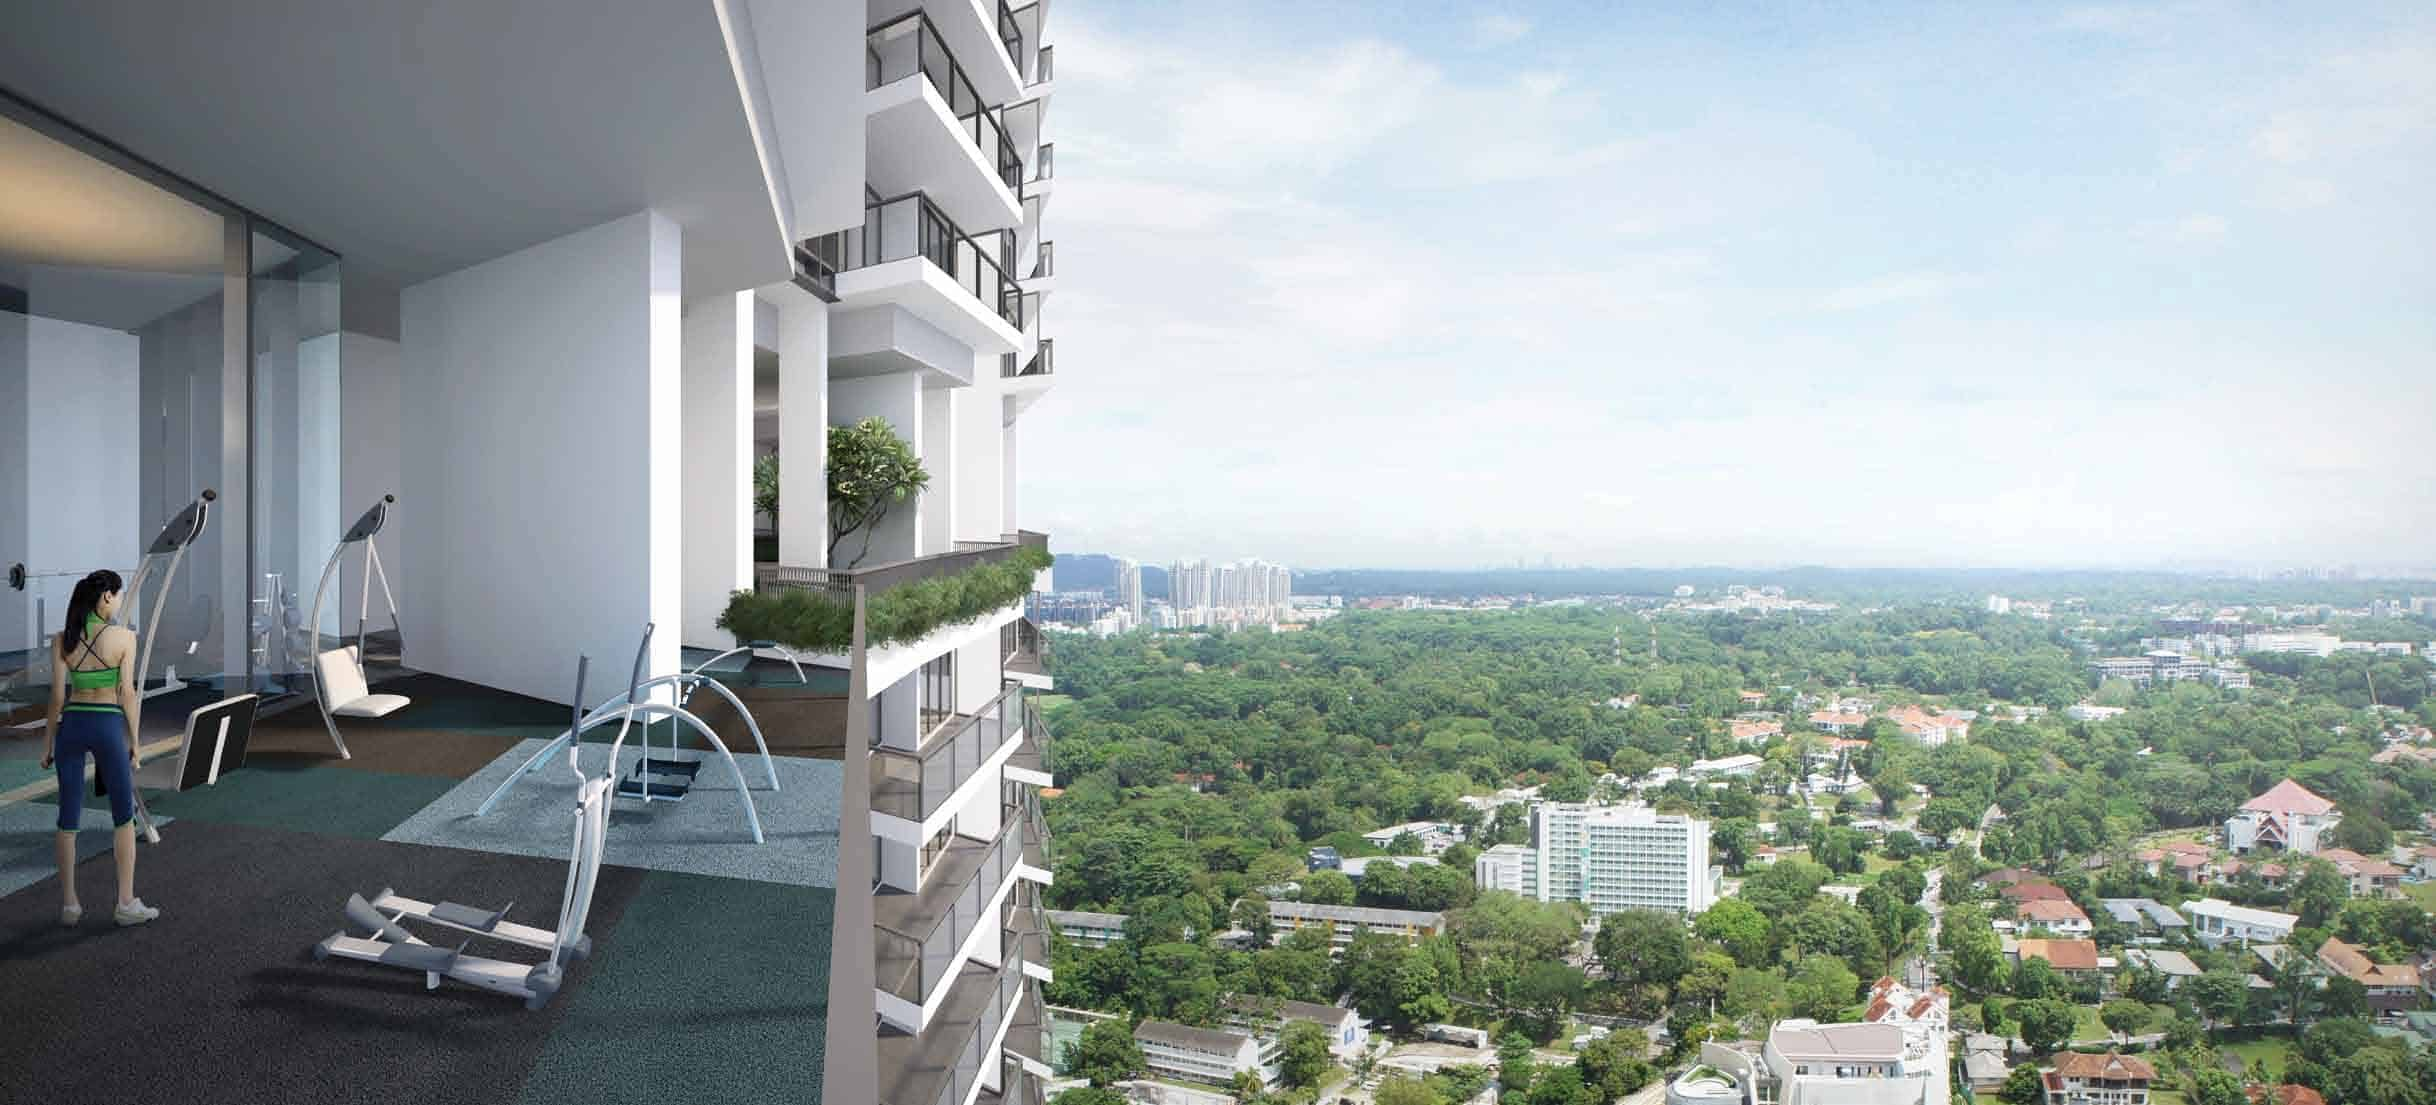 Rooms and exercise with a view from Artra at Alexandra view